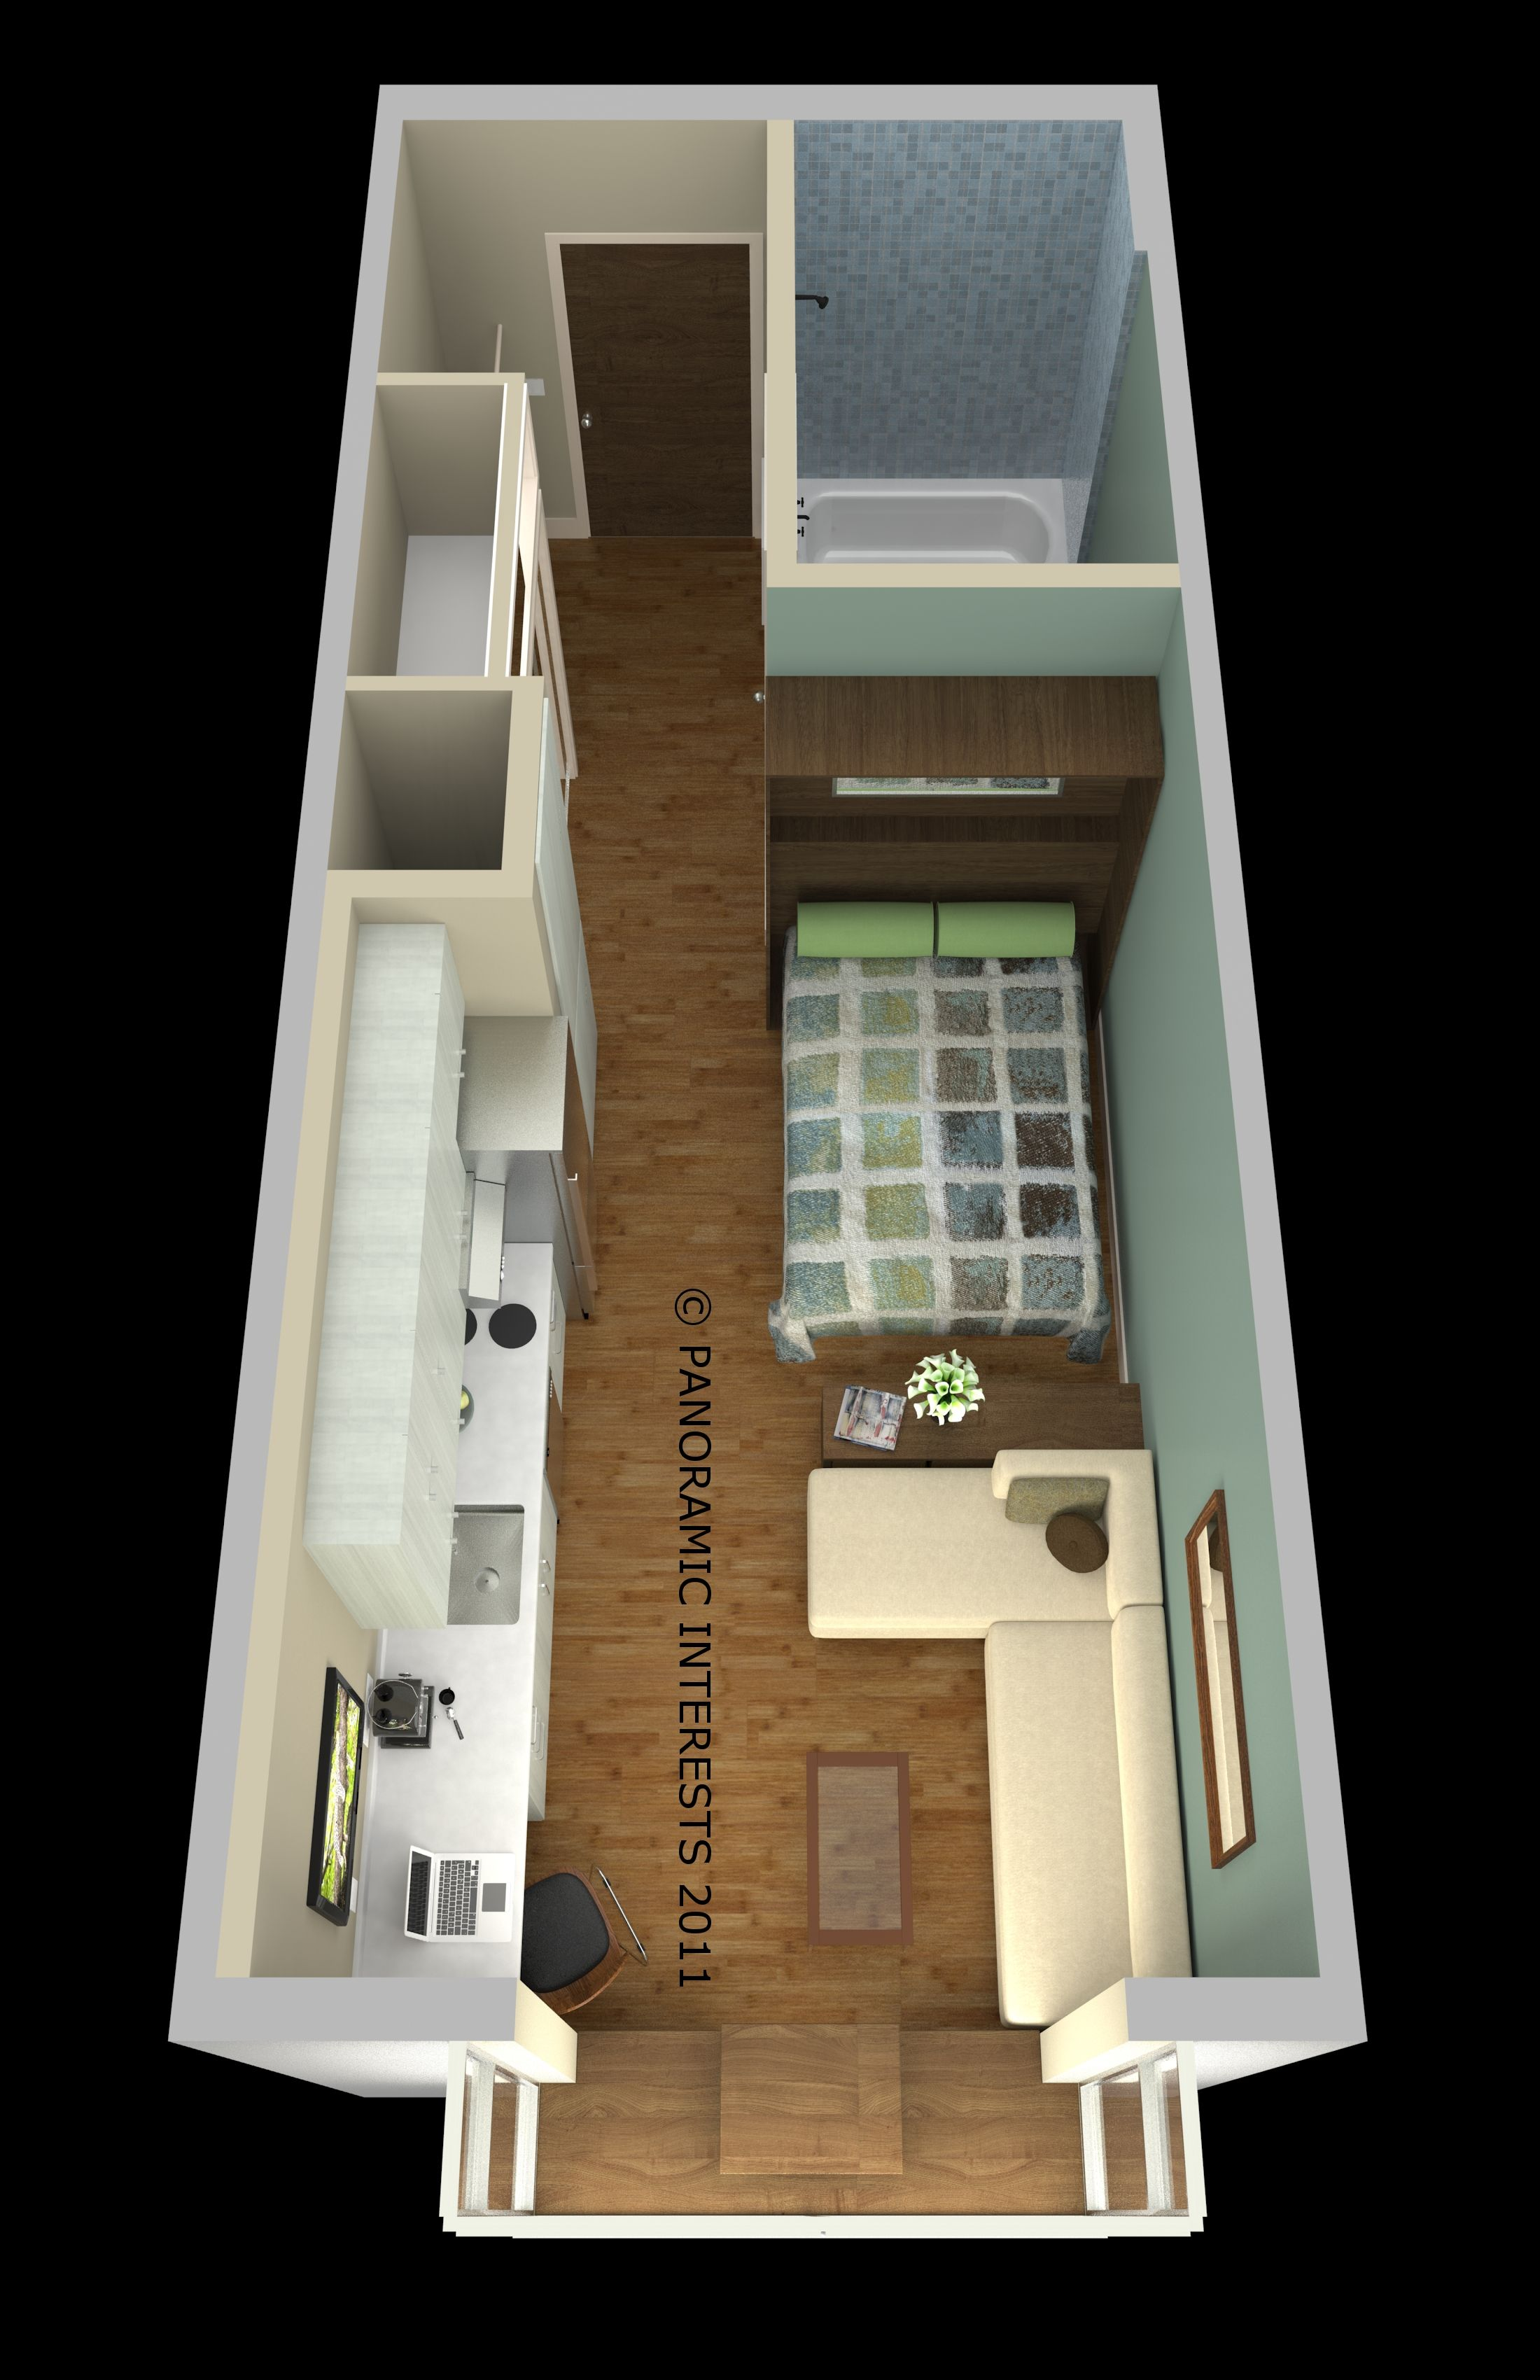 Take That Tokyo San Francisco Roves 220 Square Foot Micro Apartments Floor Plan Of Smarte S 285 Unit Credit Image Courtesy